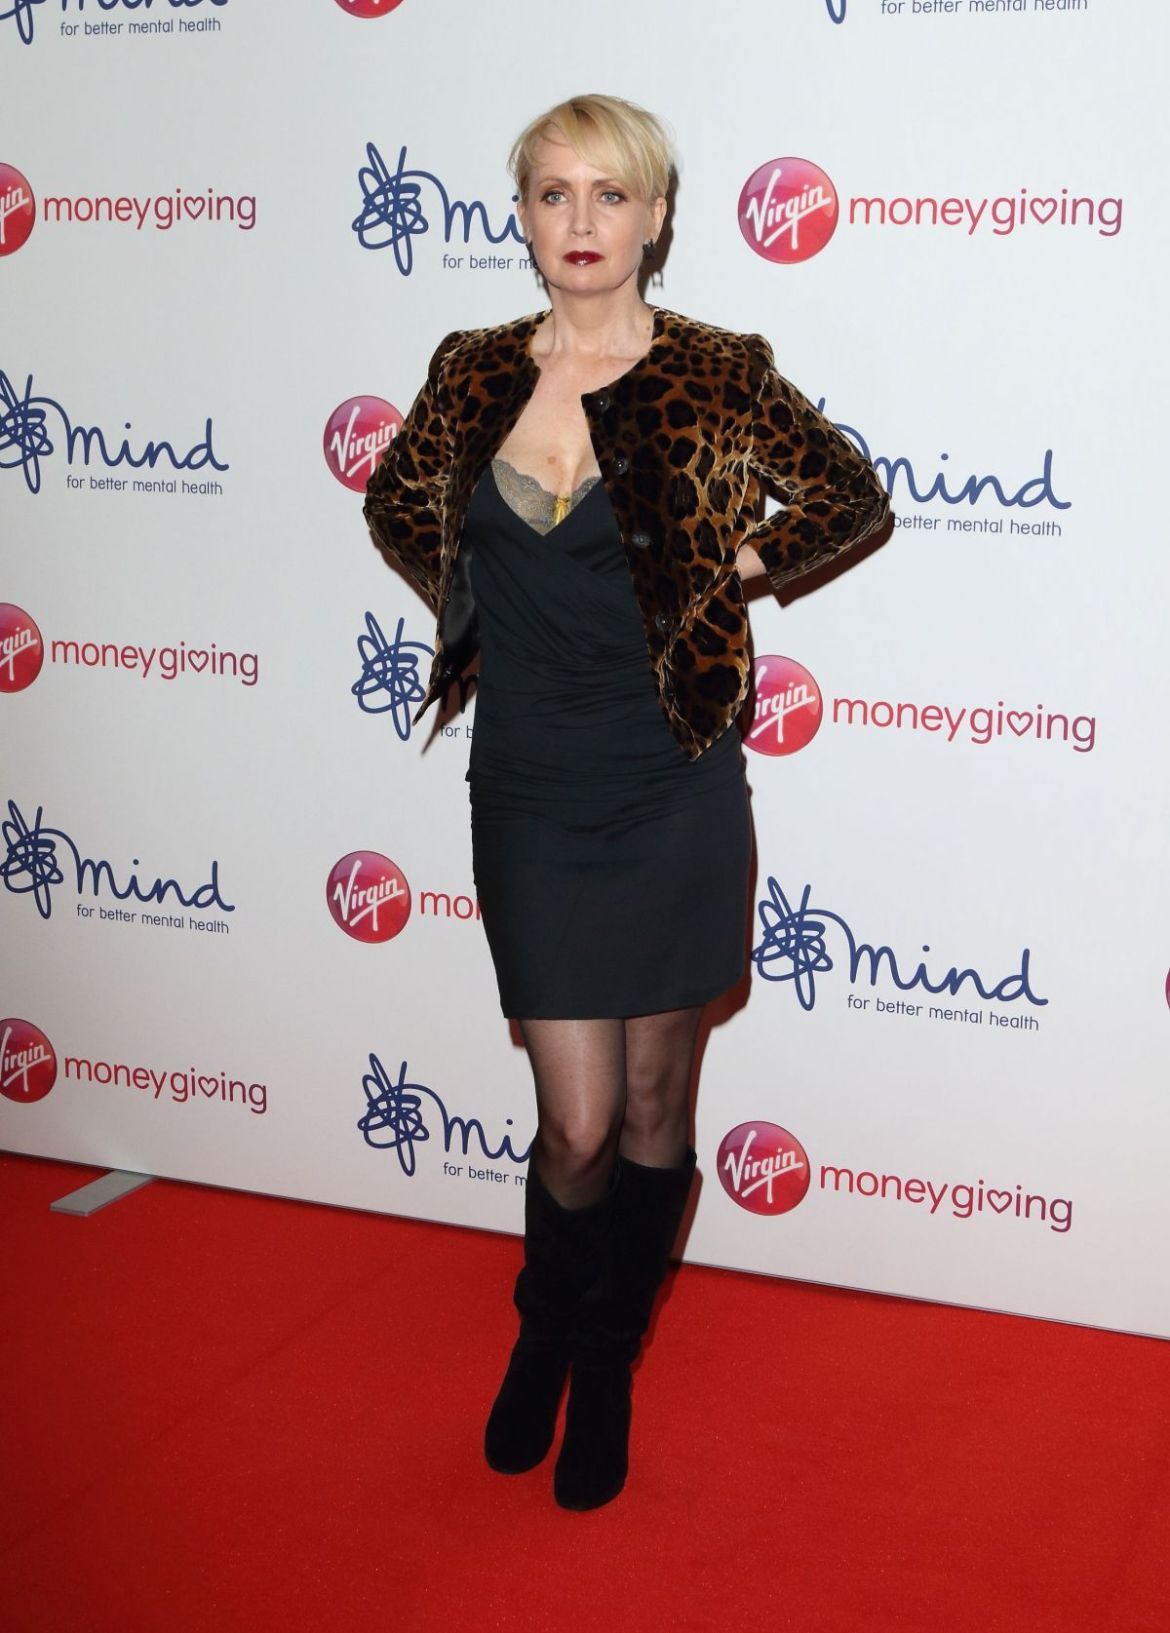 LYSETTE ANTHONY at Virgin Money Giving Mind Media Awards in London 11/29/2018